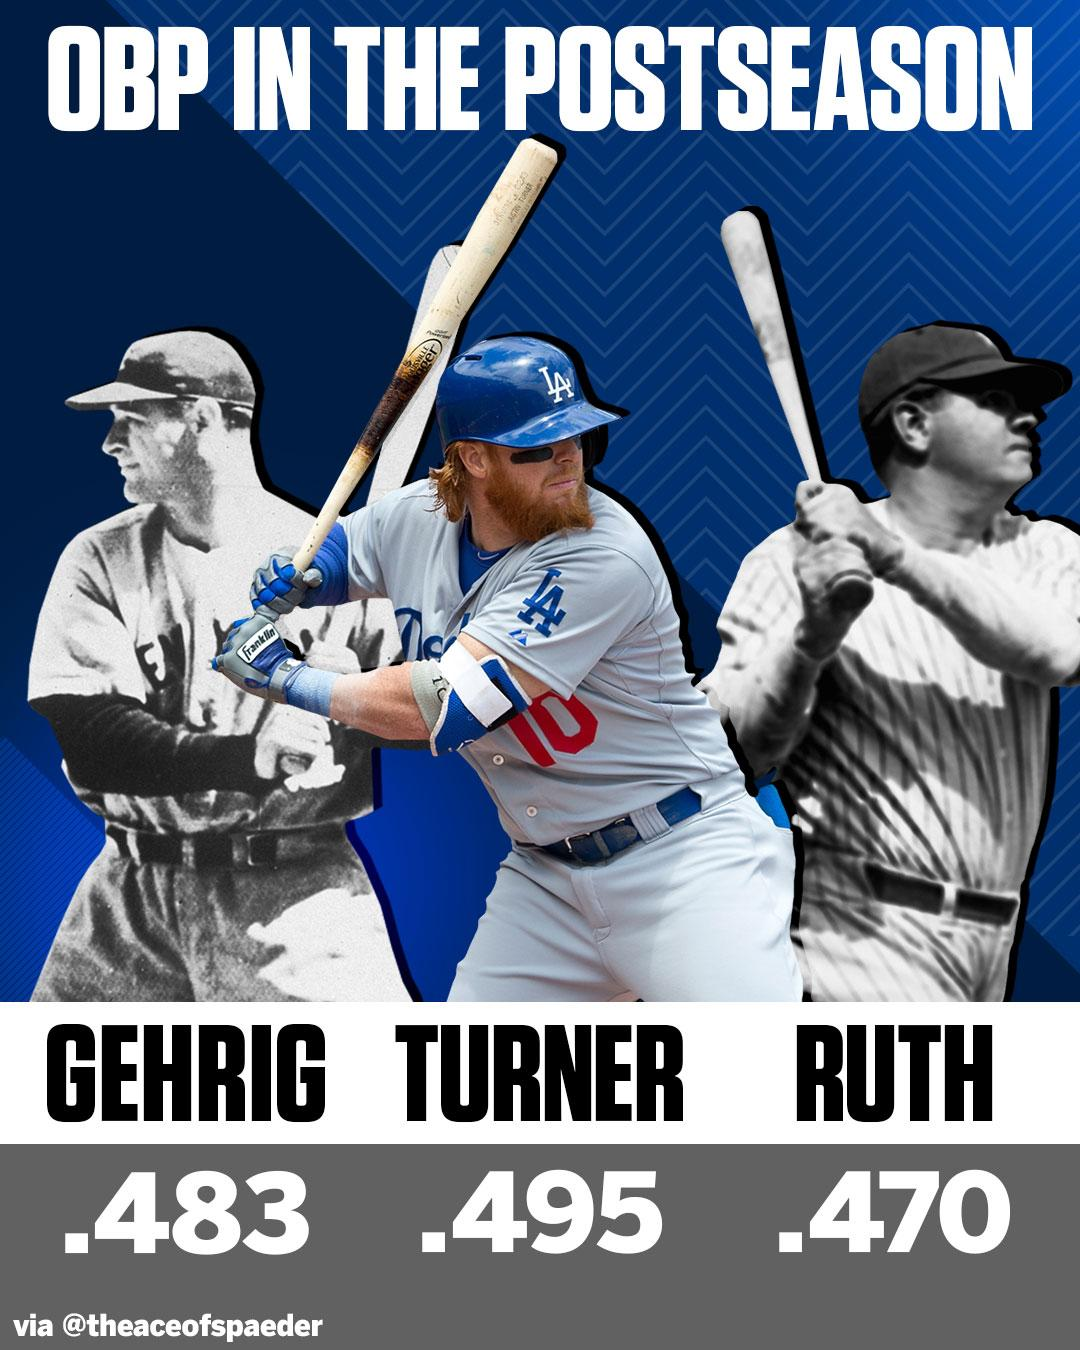 No one in MLB history has had a higher postseason OBP than Justin Turner. https://t.co/f4FwugVxsp